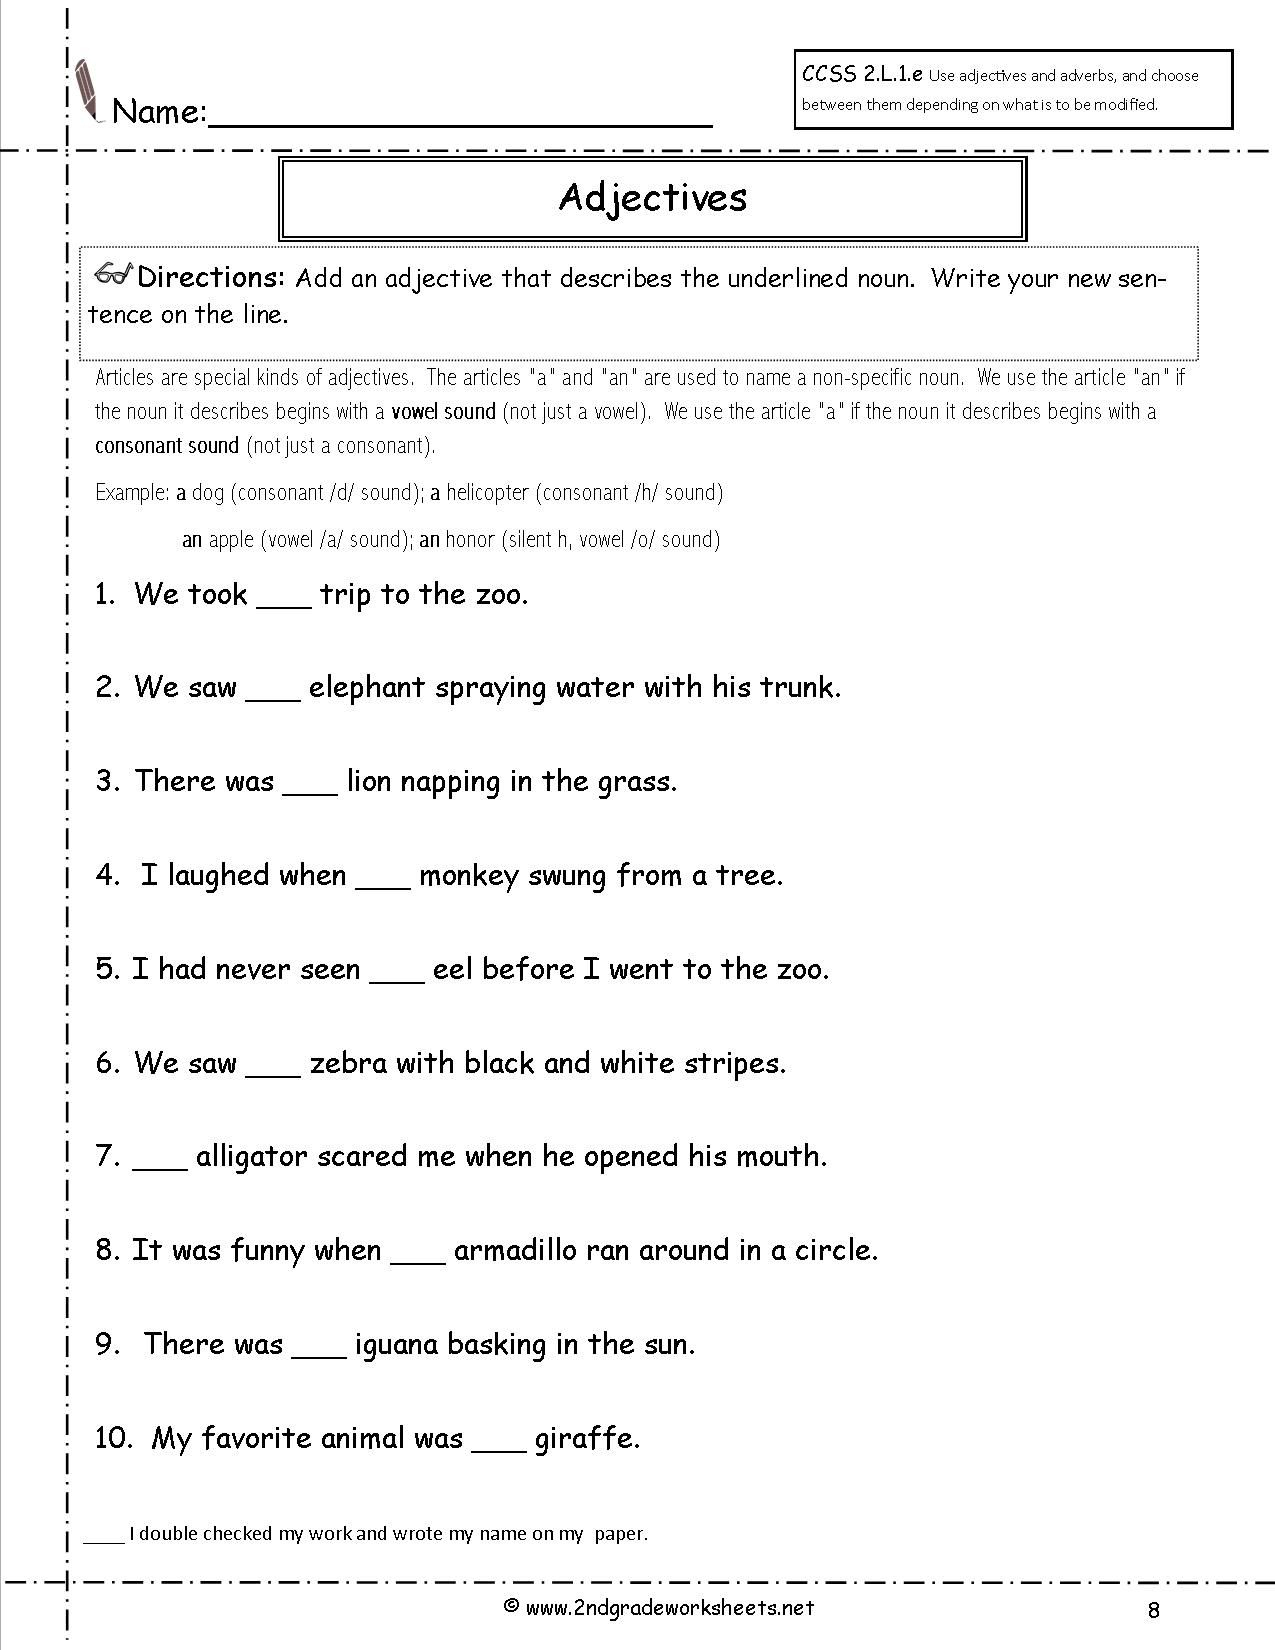 A Or An Worksheet For Grade 2 - Google Search   Education - Free Printable Grammar Worksheets For 2Nd Grade